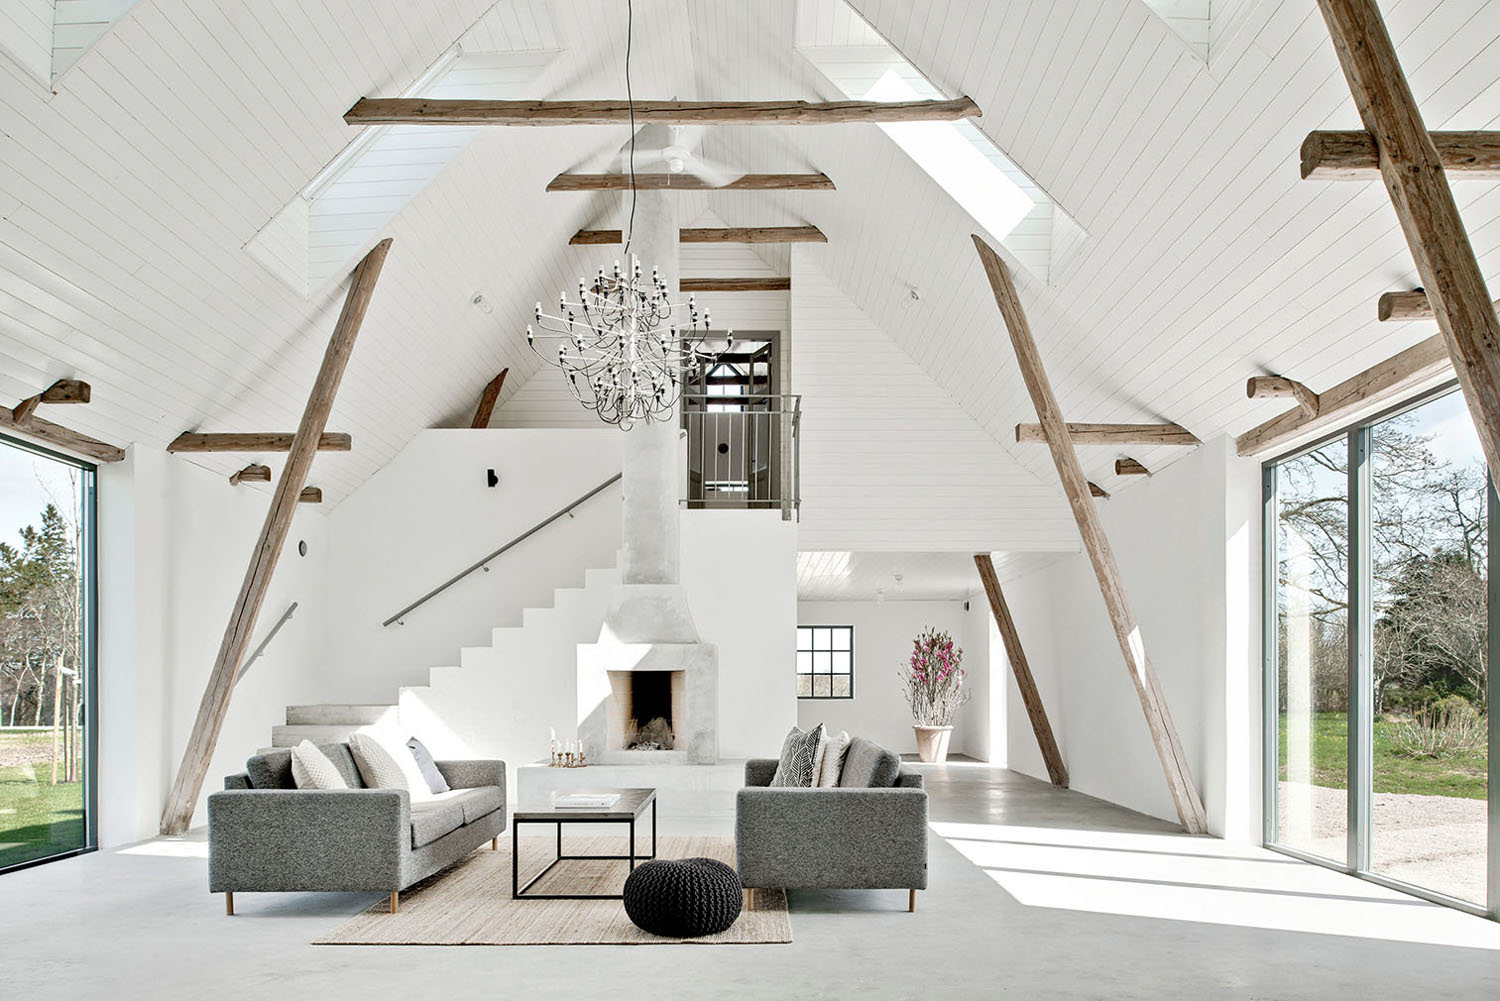 Sweden Houses Design Country Homes Idesignarch Interior Design Architecture